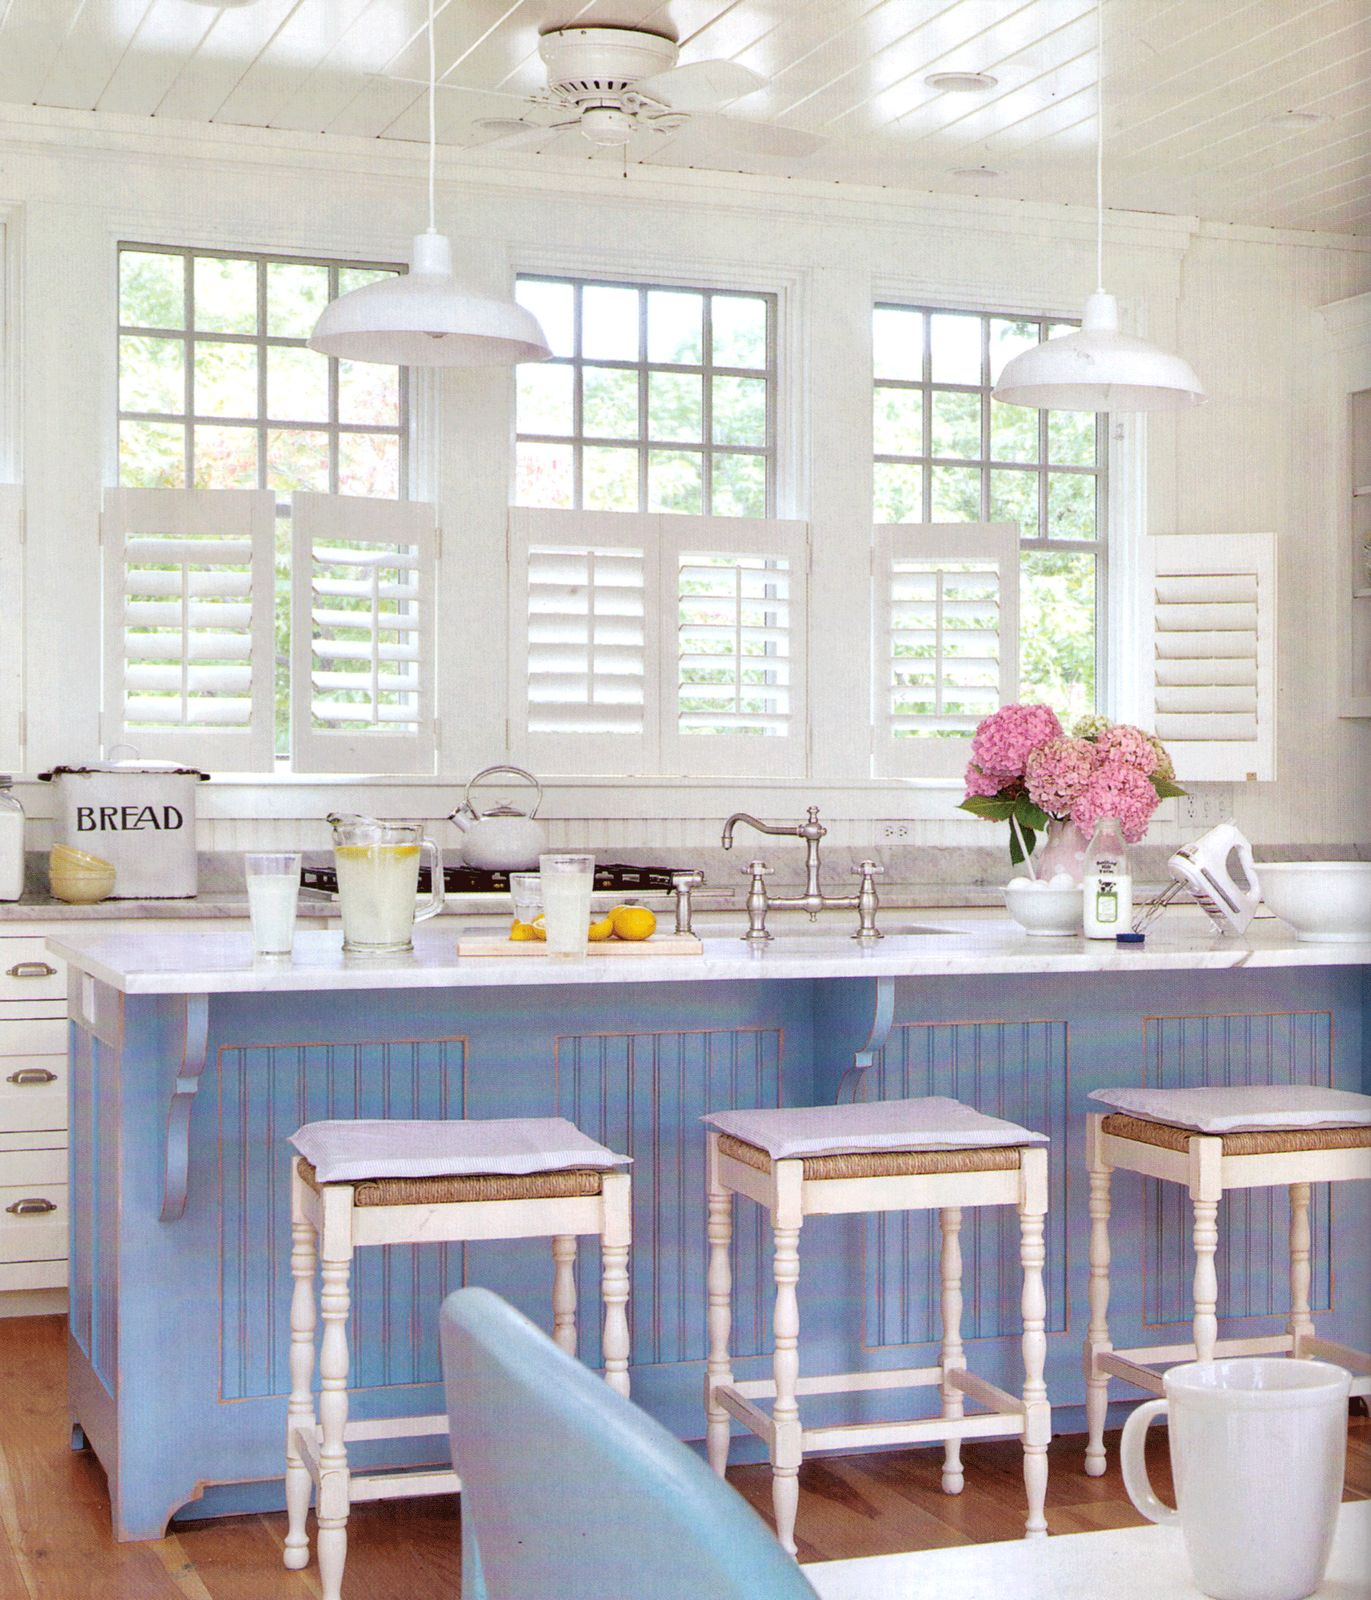 panels painted blue in a white kitchen | Kitchens | Pinterest ...